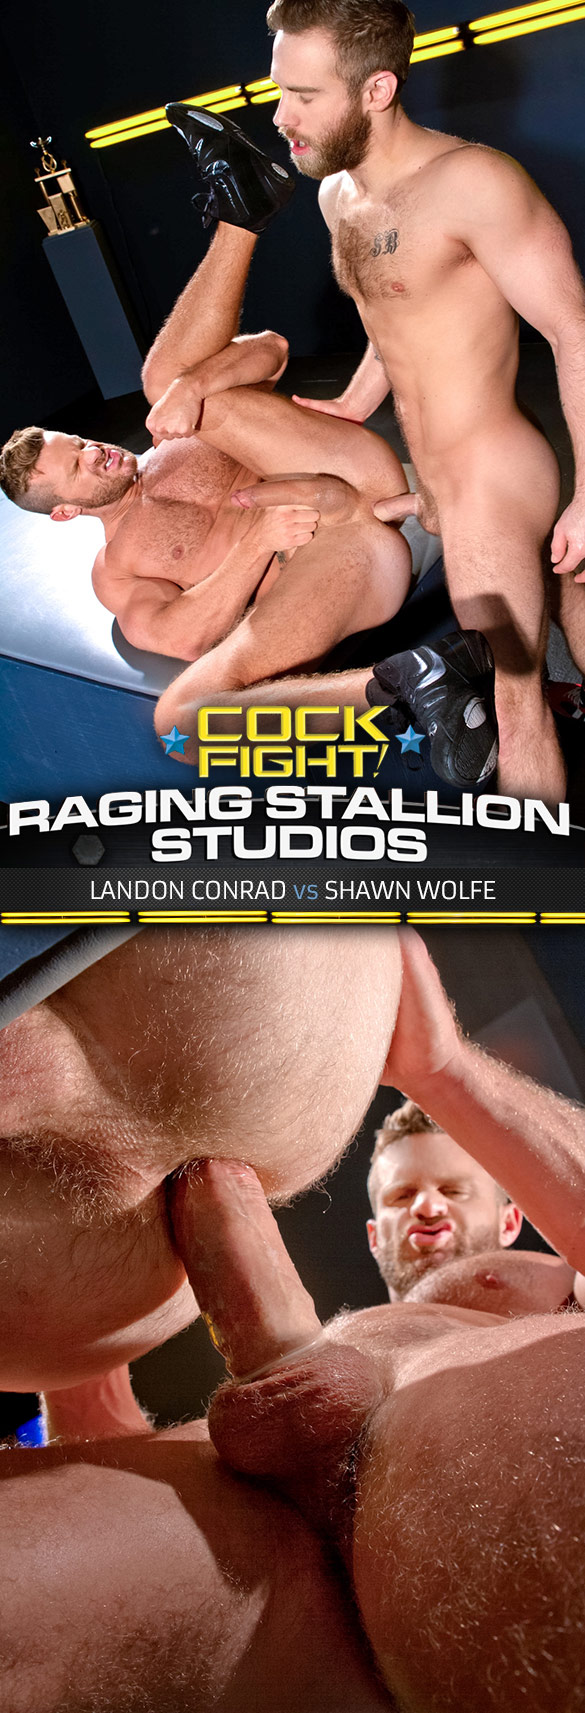 "Raging Stallion: Landon Conrad and Shawn Wolfe pound each other in ""Cock Fight!"""